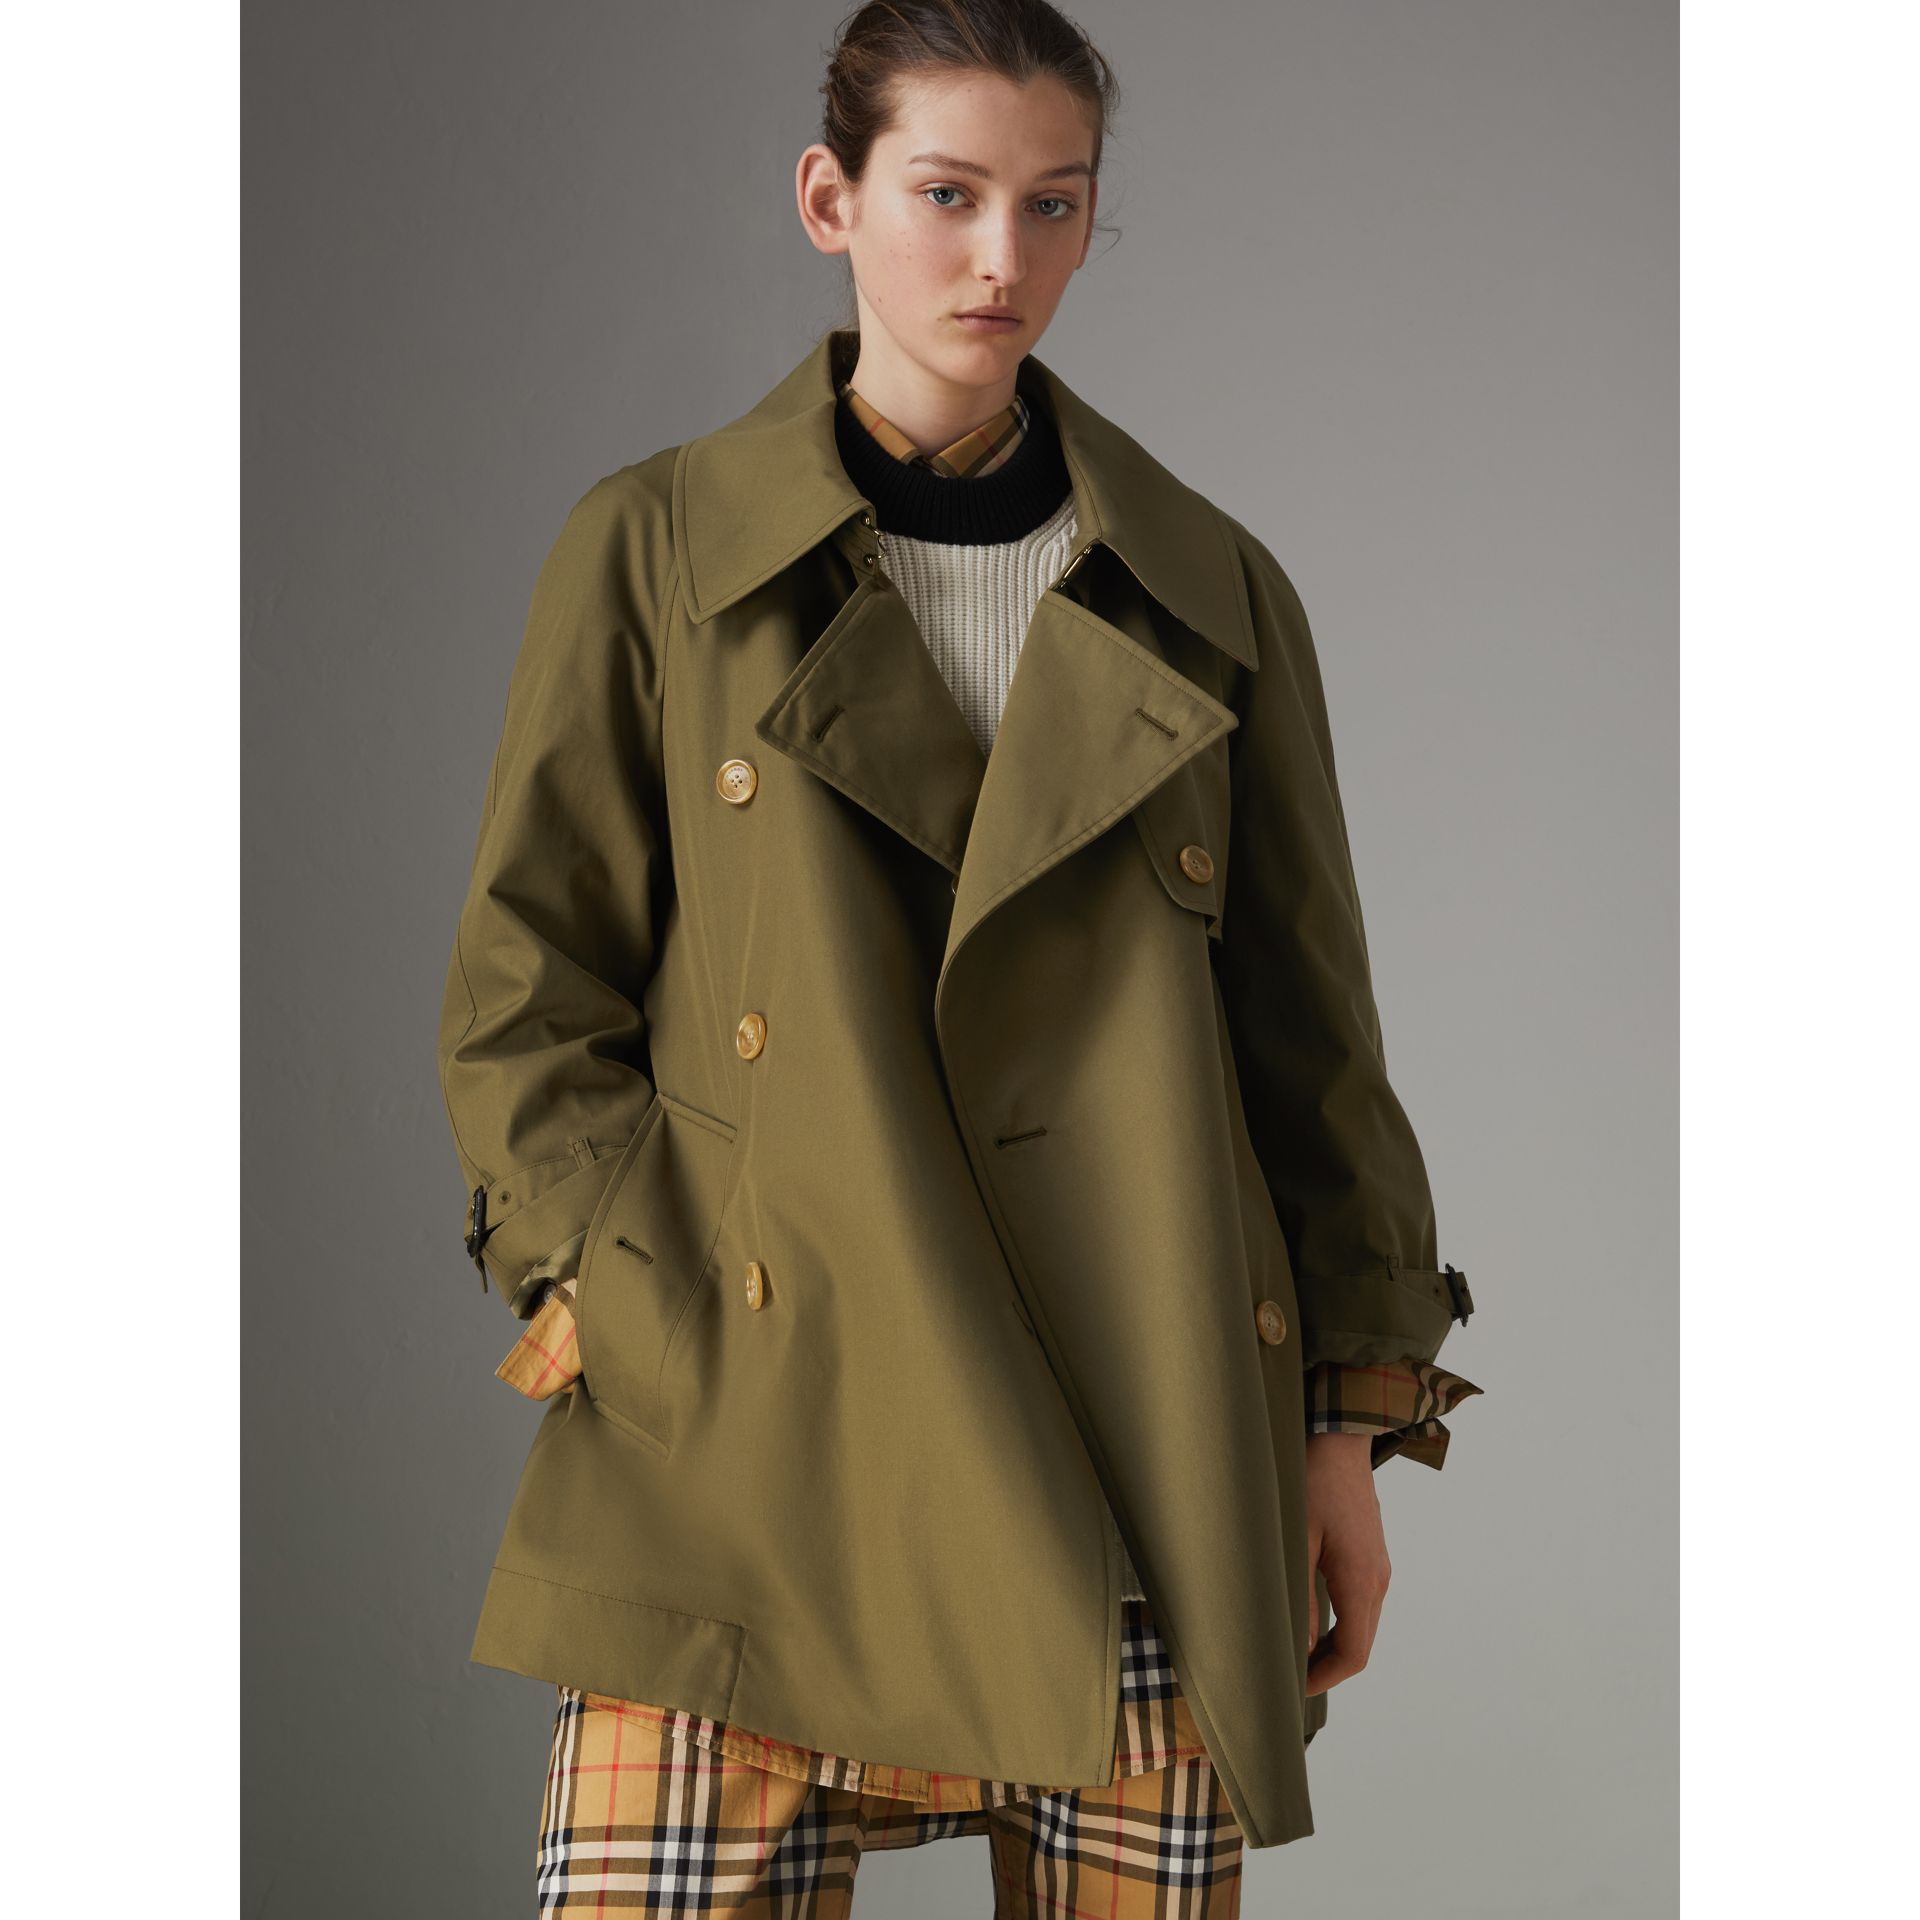 Exaggerated Collar Cotton Gabardine Trench Coat in Military Olive - Women | Burberry - gallery image 5